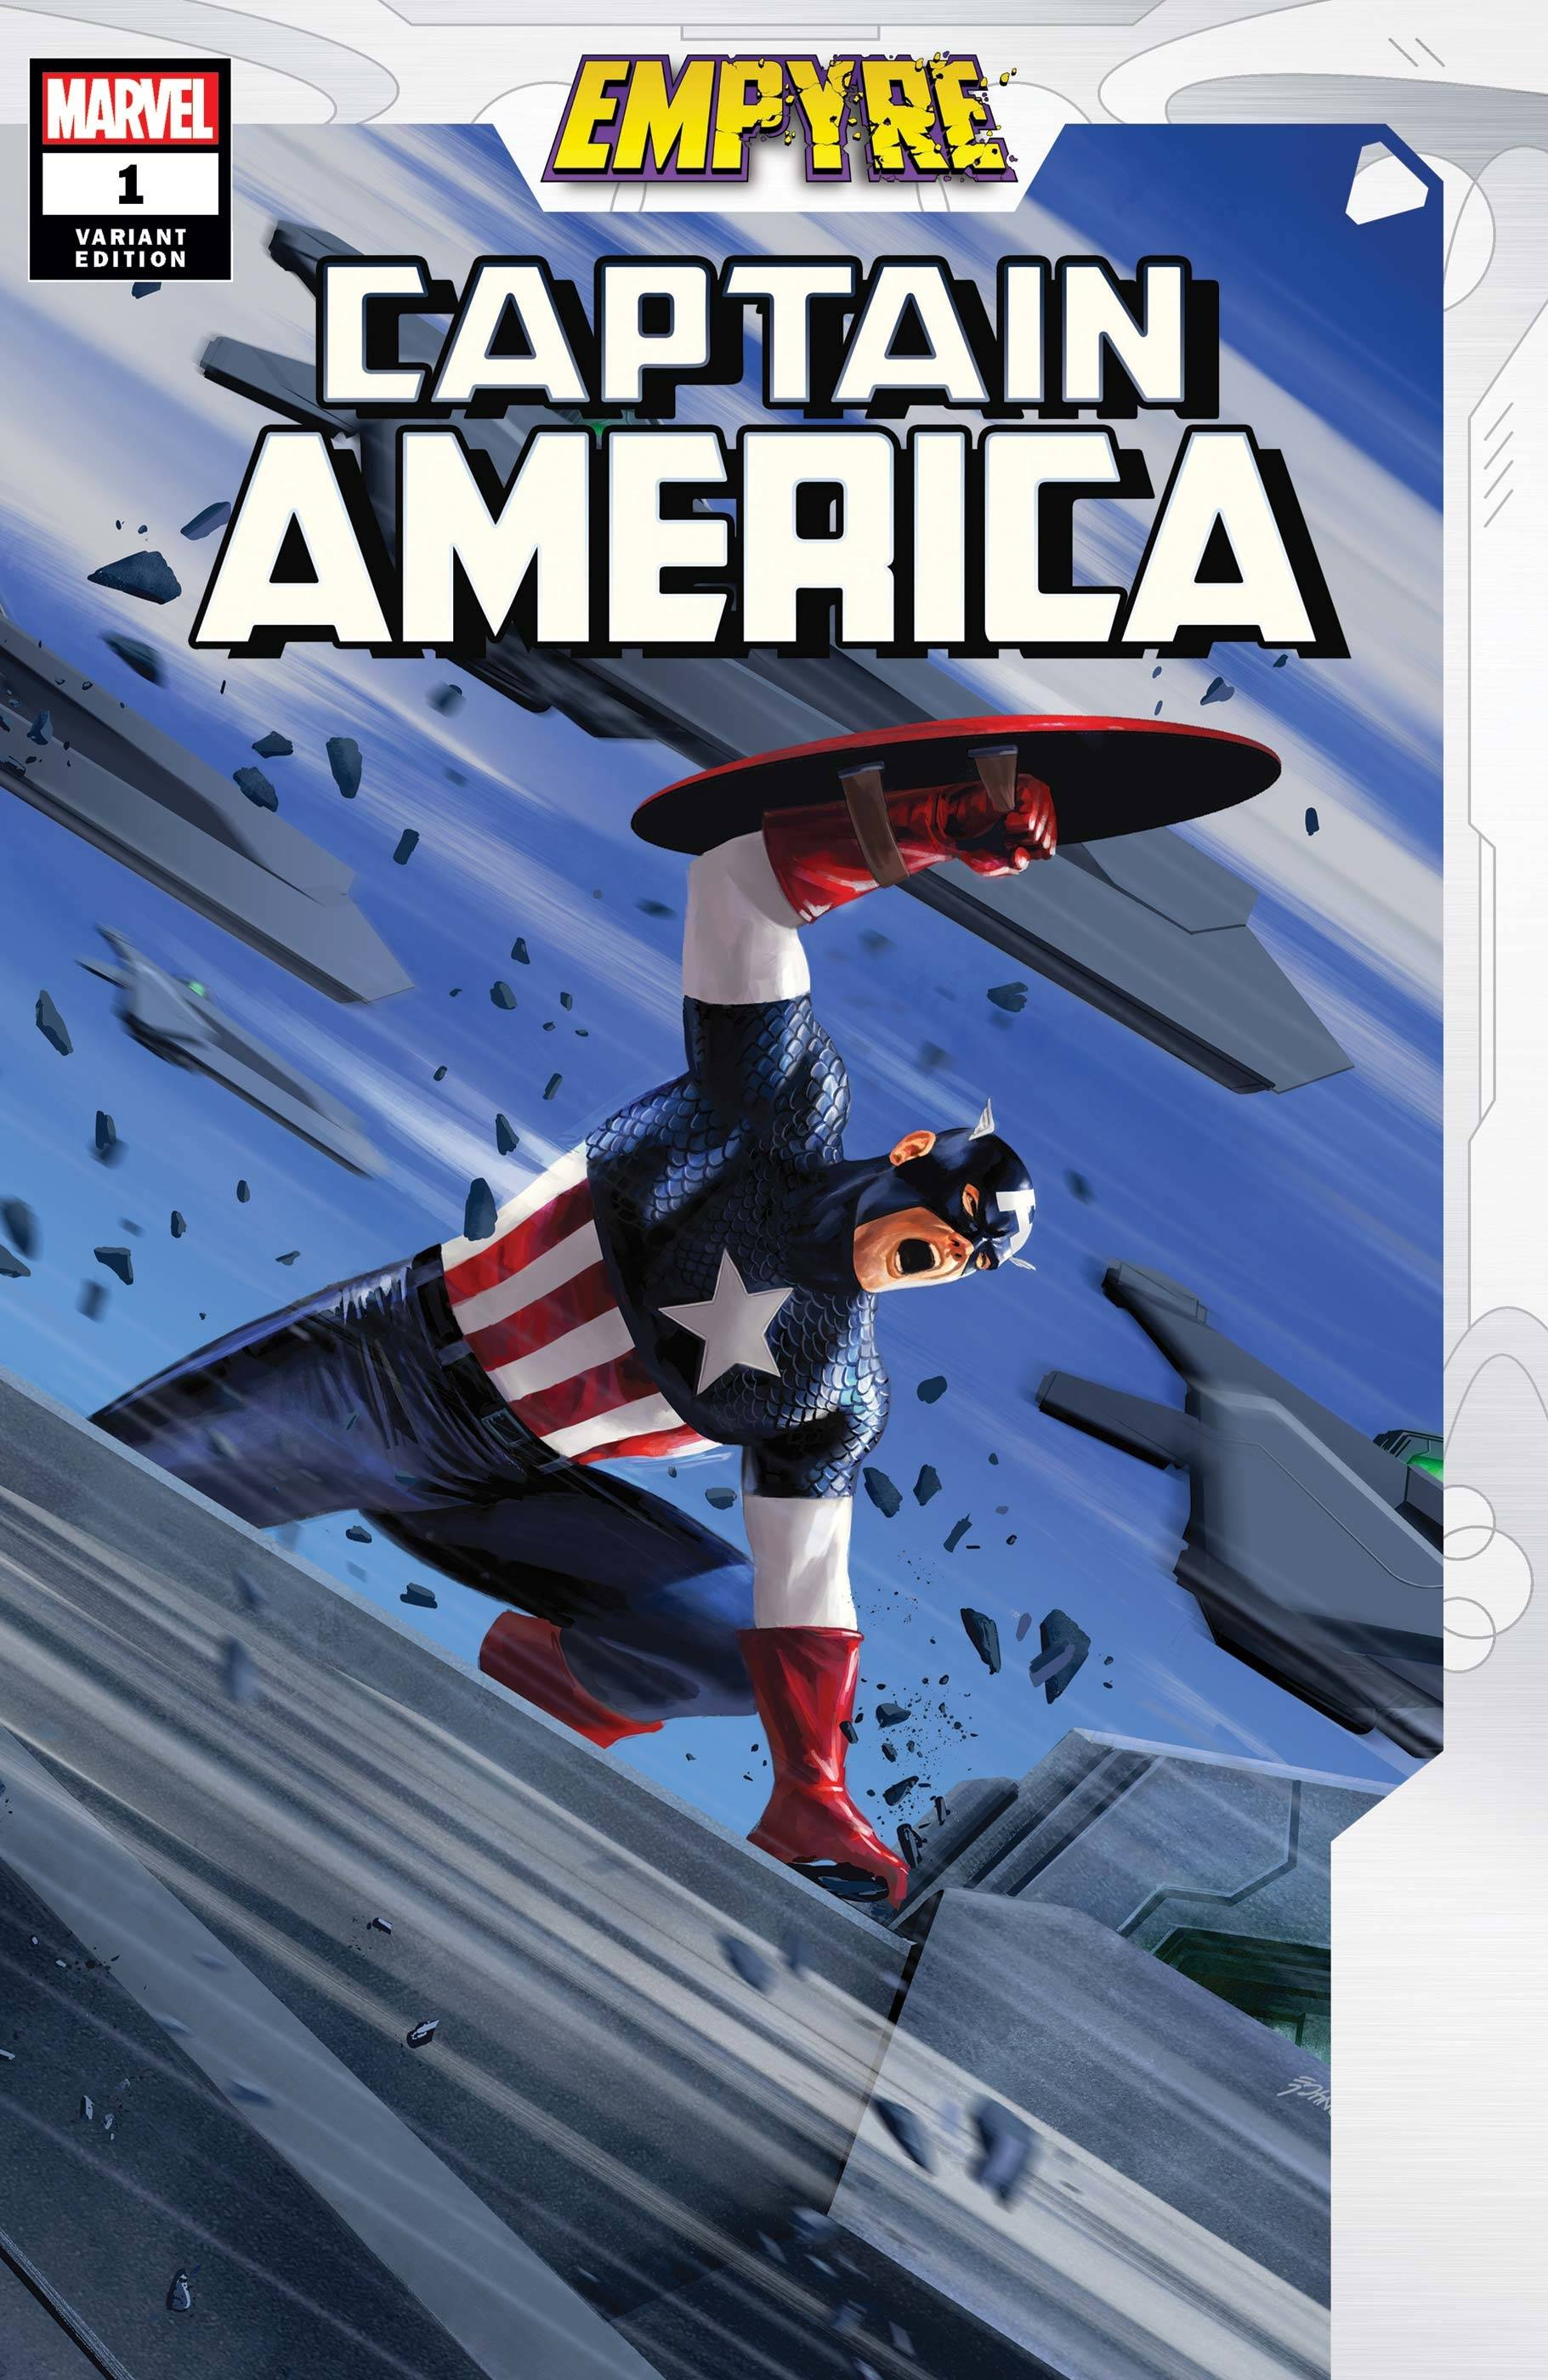 EMPYRE CAPTAIN AMERICA #1 (OF 3) EPTING VAR